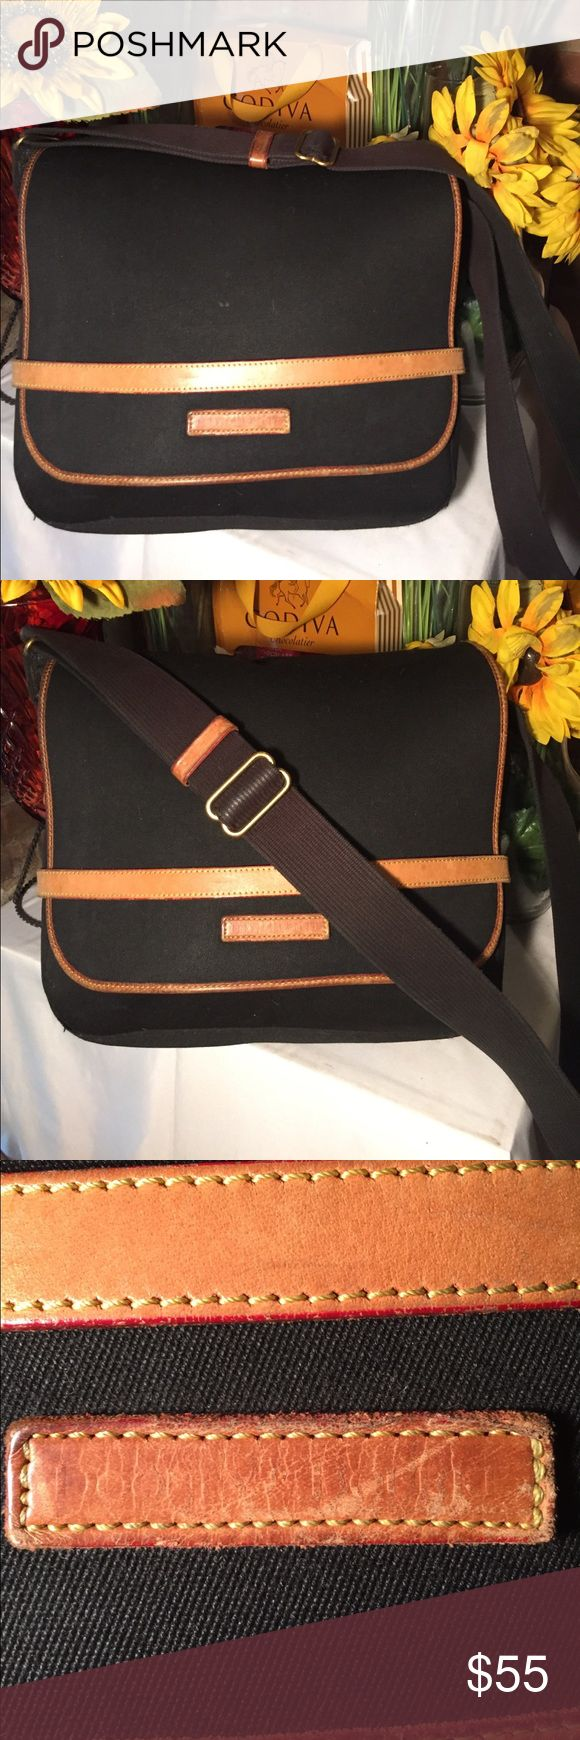 Dooney & Bourke Messenger Sz 11x13- 23' strap- Good condition- Canvass material- leather trim- Black/Tan- Small laptop will fit- Clean interior- Very nice bag. Dooney & Bourke Bags Laptop Bags